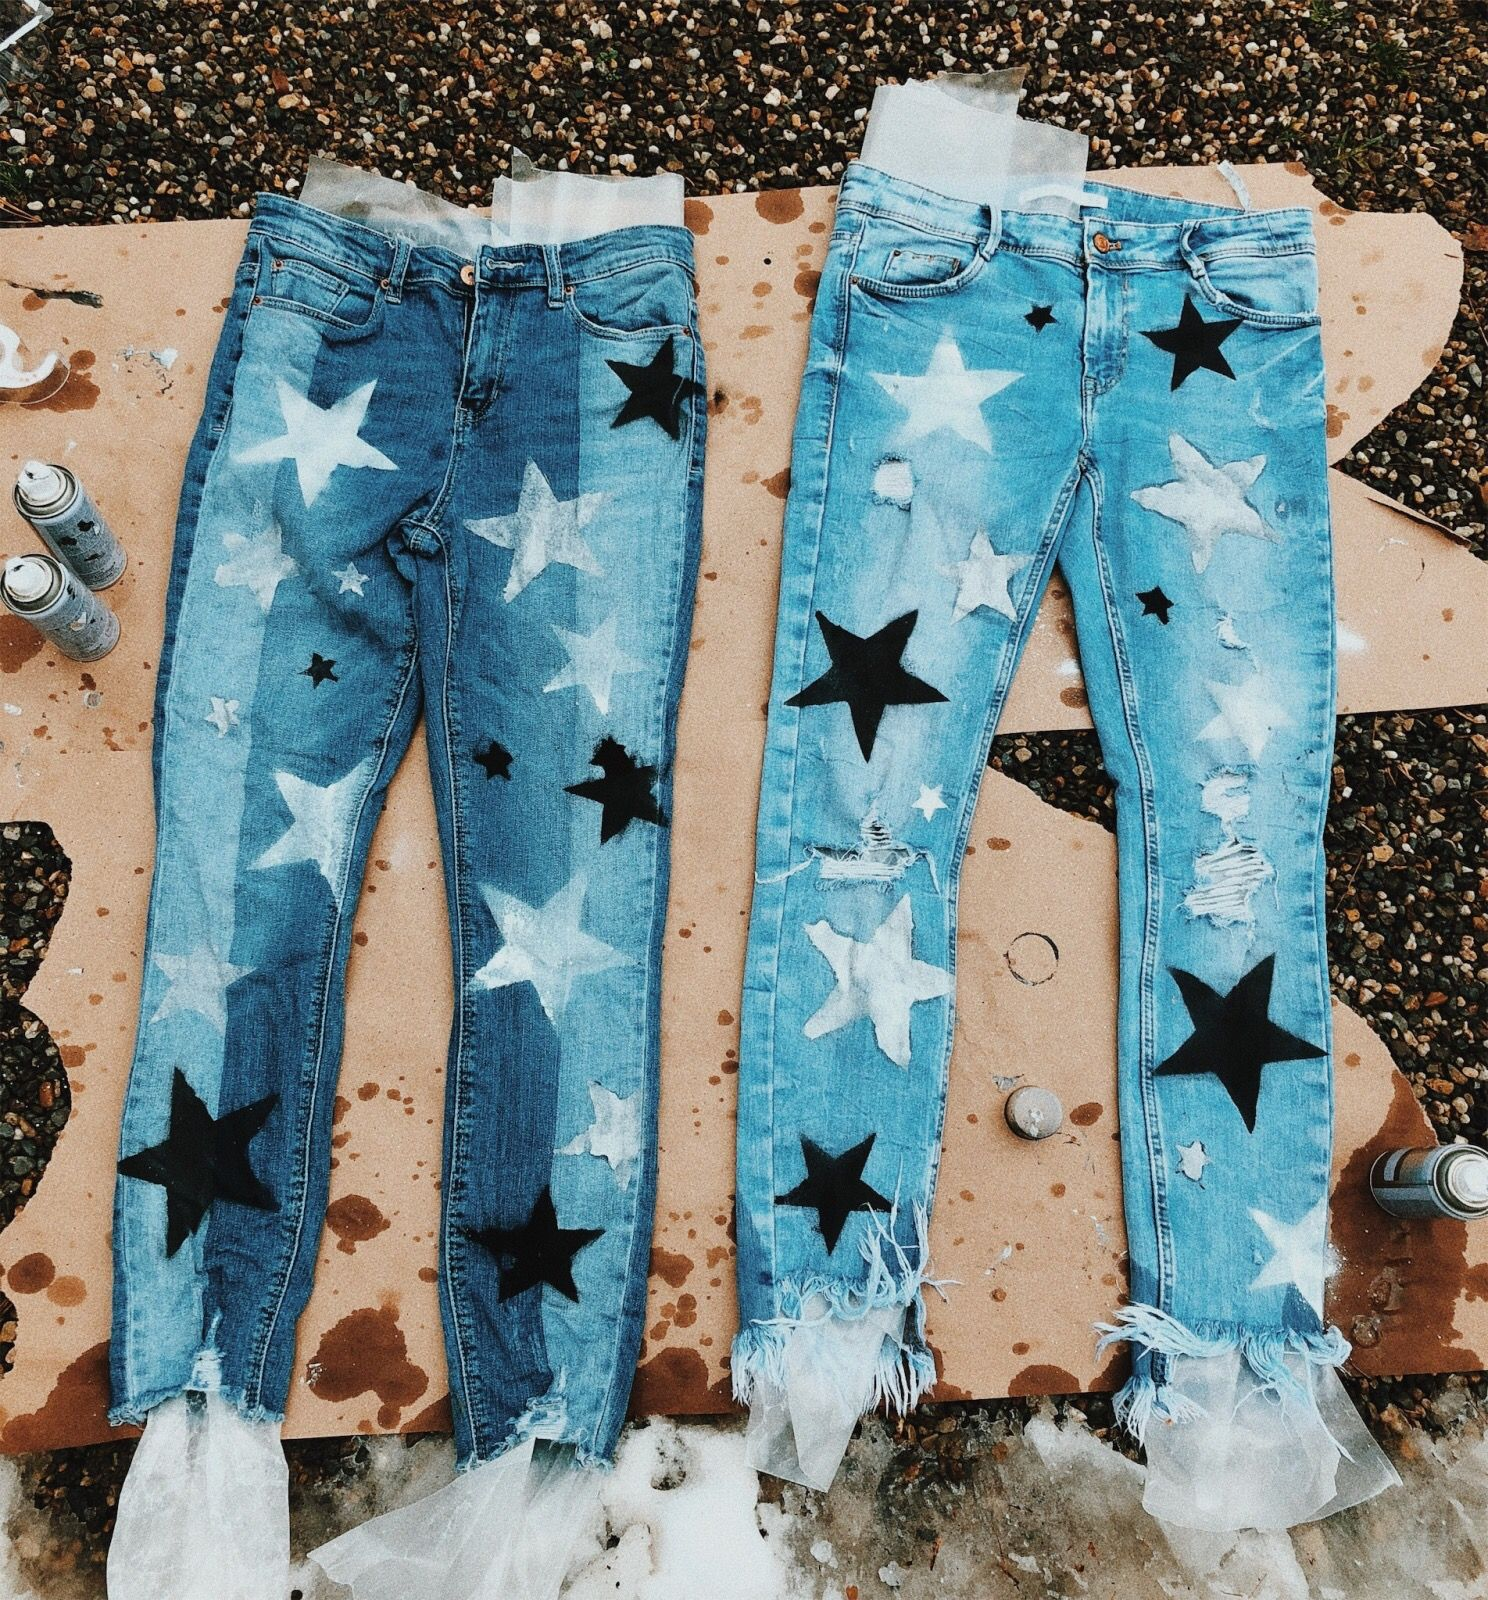 Star Jeans -   13 DIY Clothes Shoes outfit